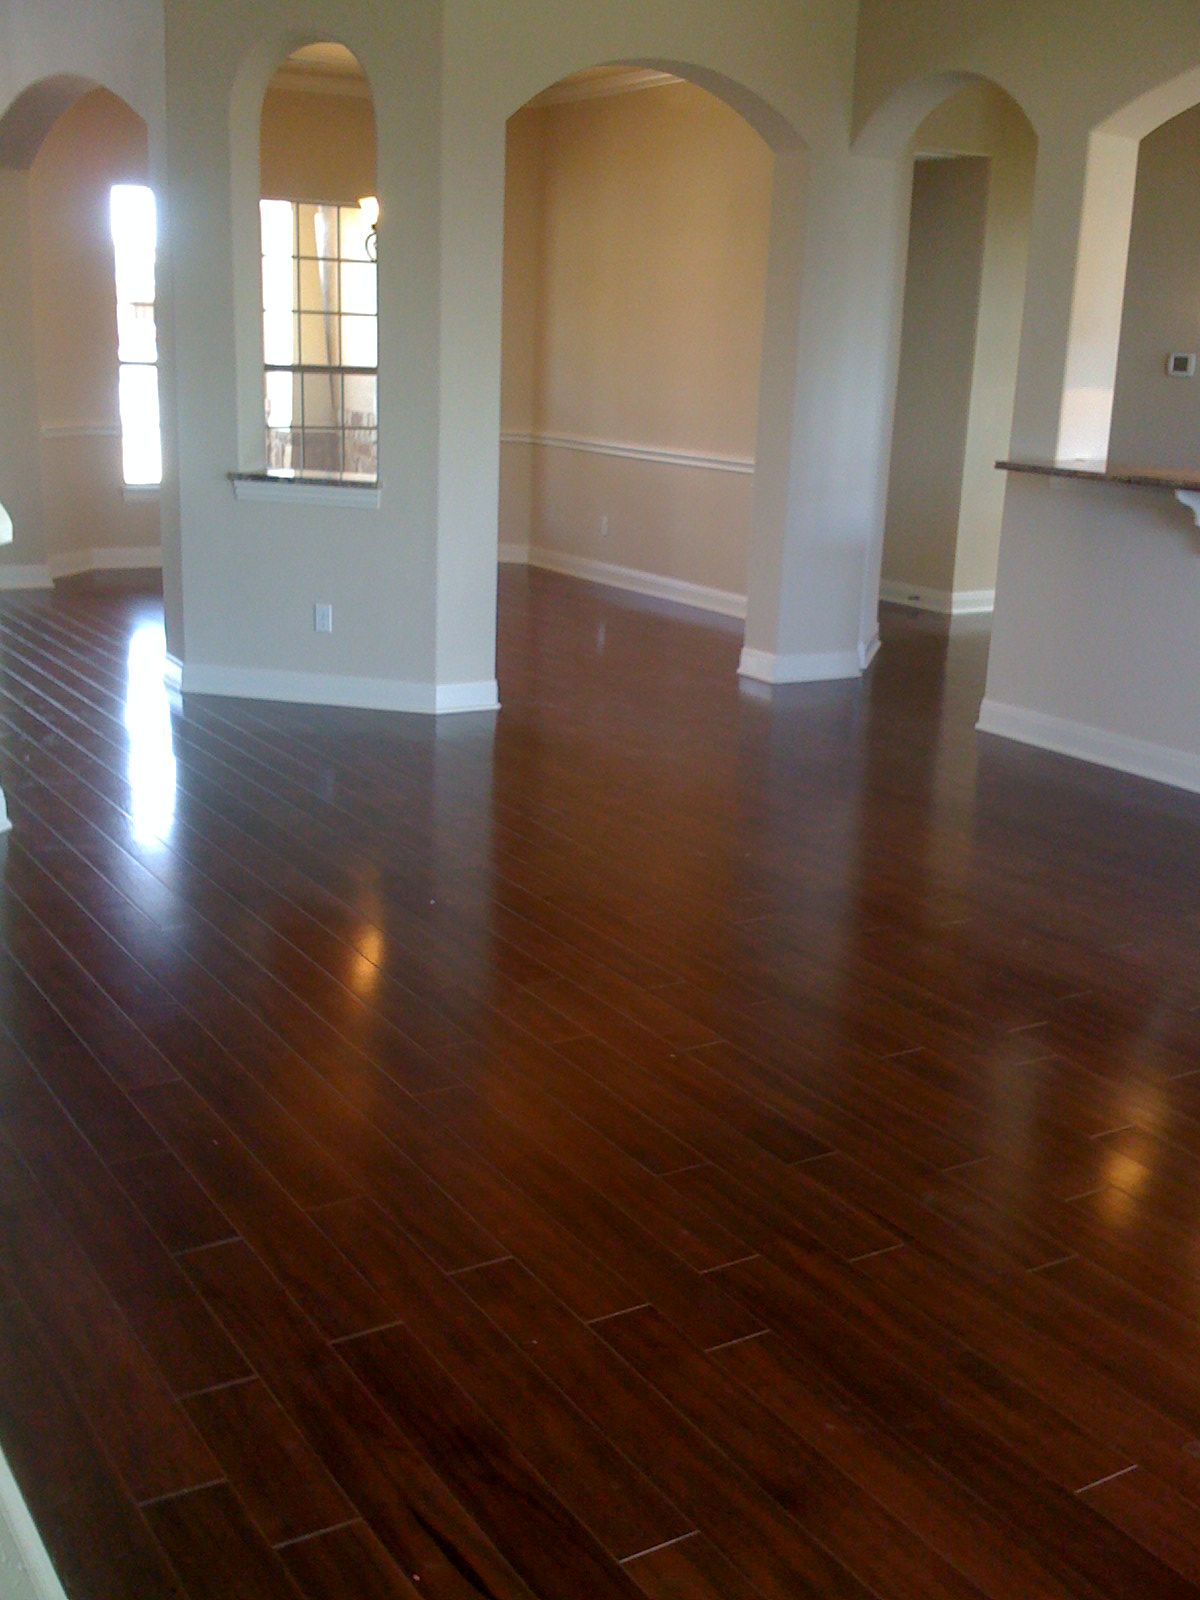 Dark Wood Floors But All I Can Think Of Is How Much Fun It Would Be To Slide In Stocking Feet Across This